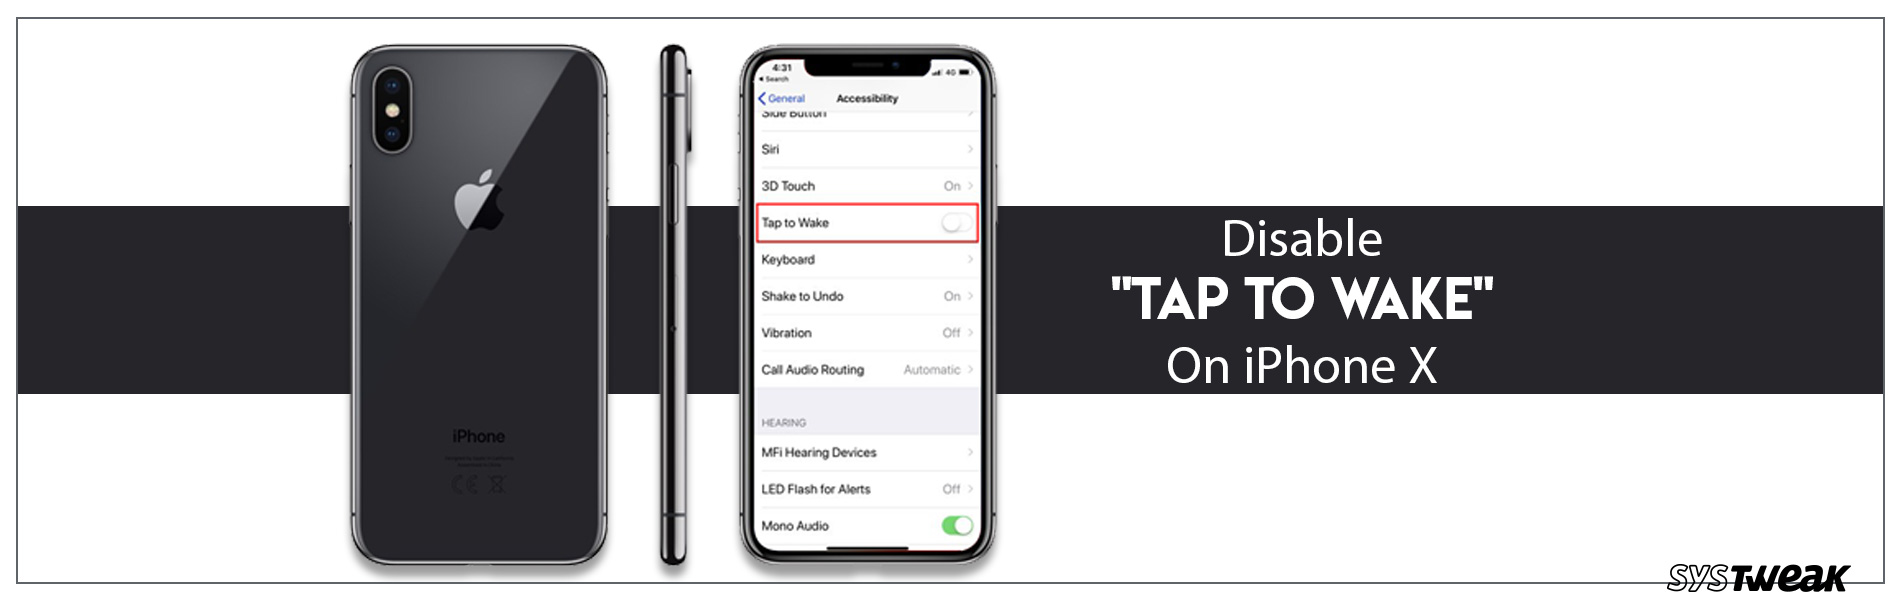 How to Disable/Turn Off 'Tap to Wake' feature on iPhone X